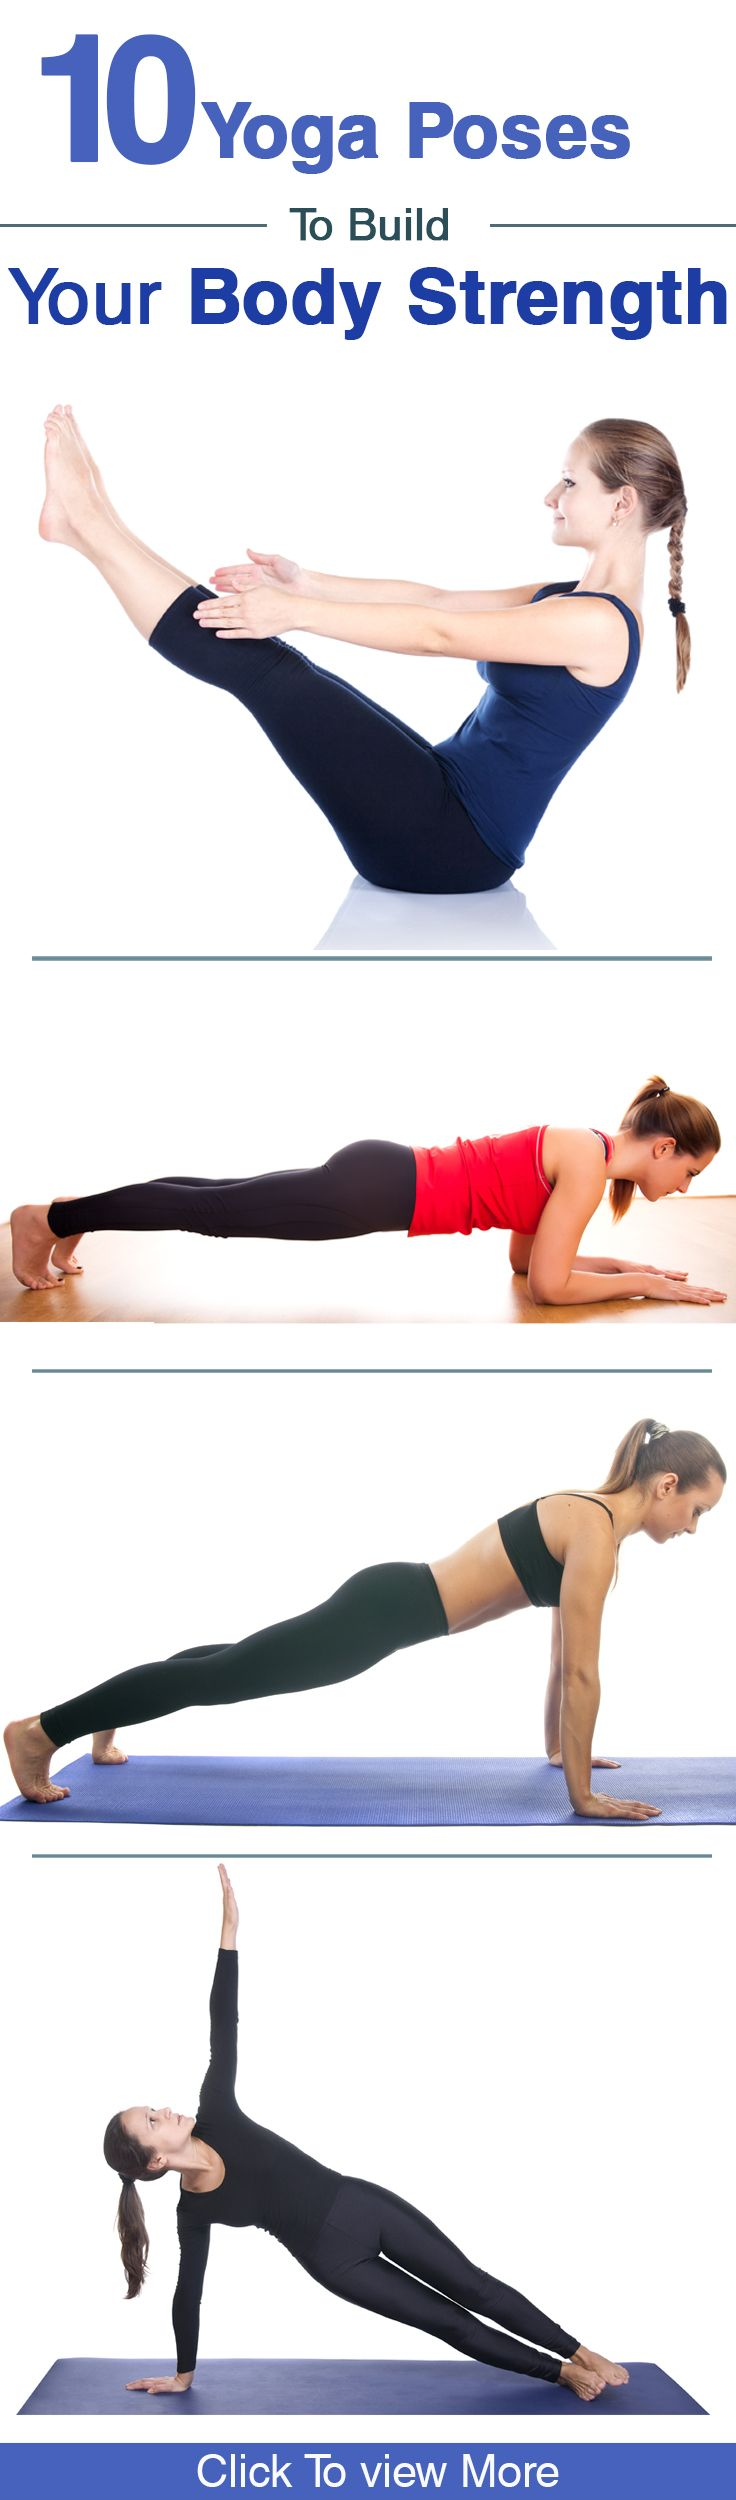 11 Effective #Yoga Poses To Build Your Body Strength that don't include being flexible